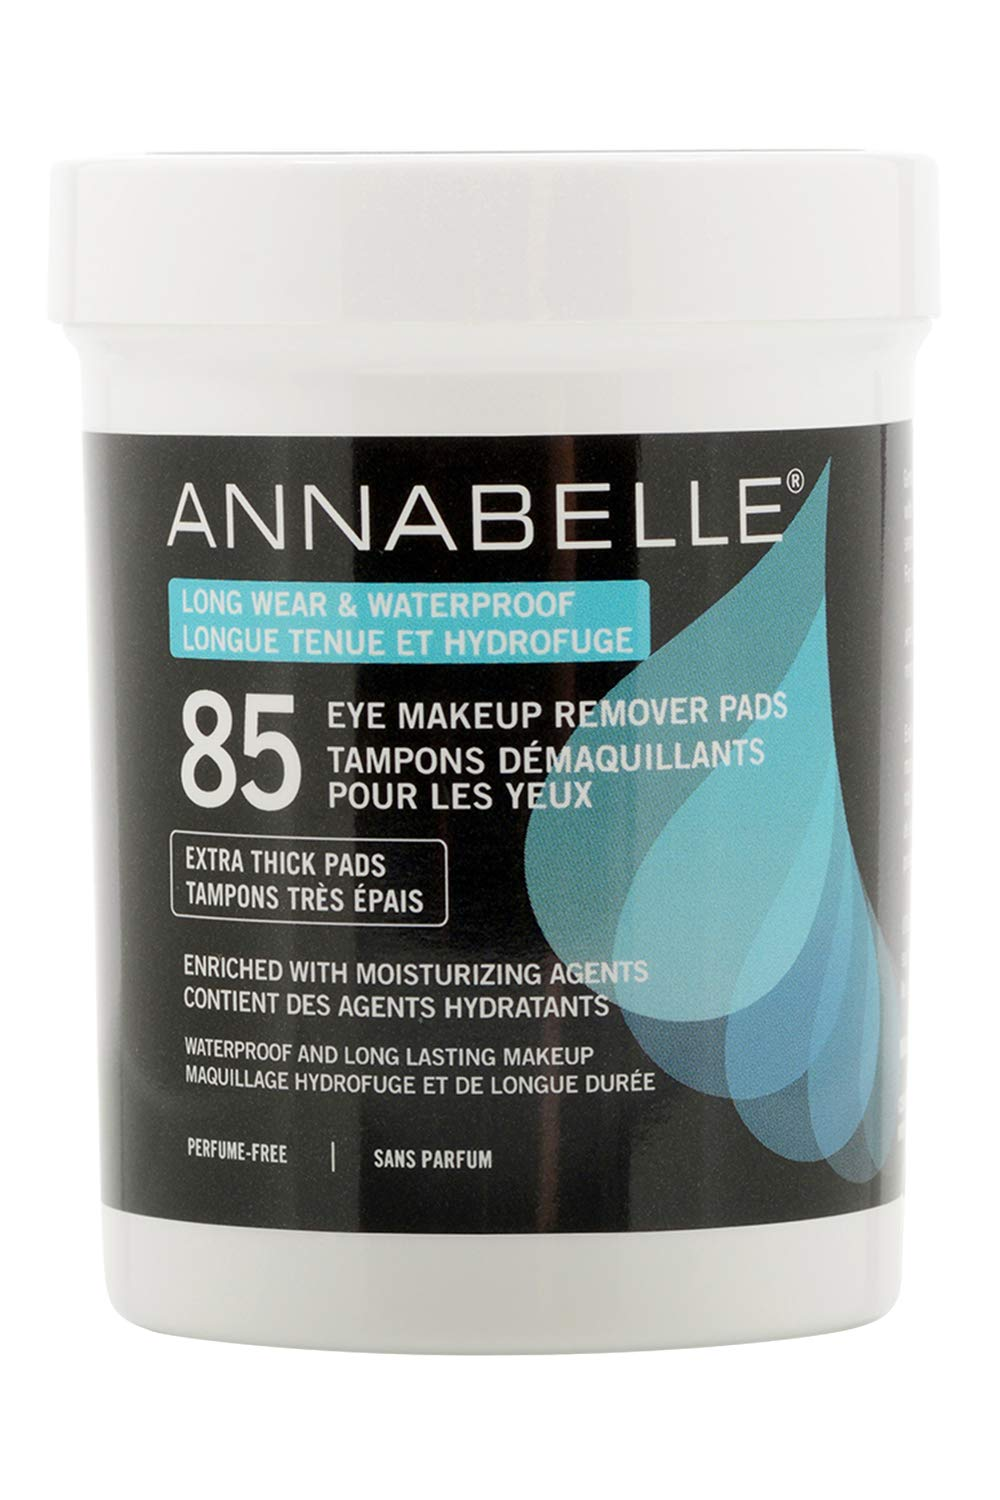 Annabelle Long-Wear & Waterproof Eye Makeup Remover Pads, 85 pads Groupe Marcelle Inc.